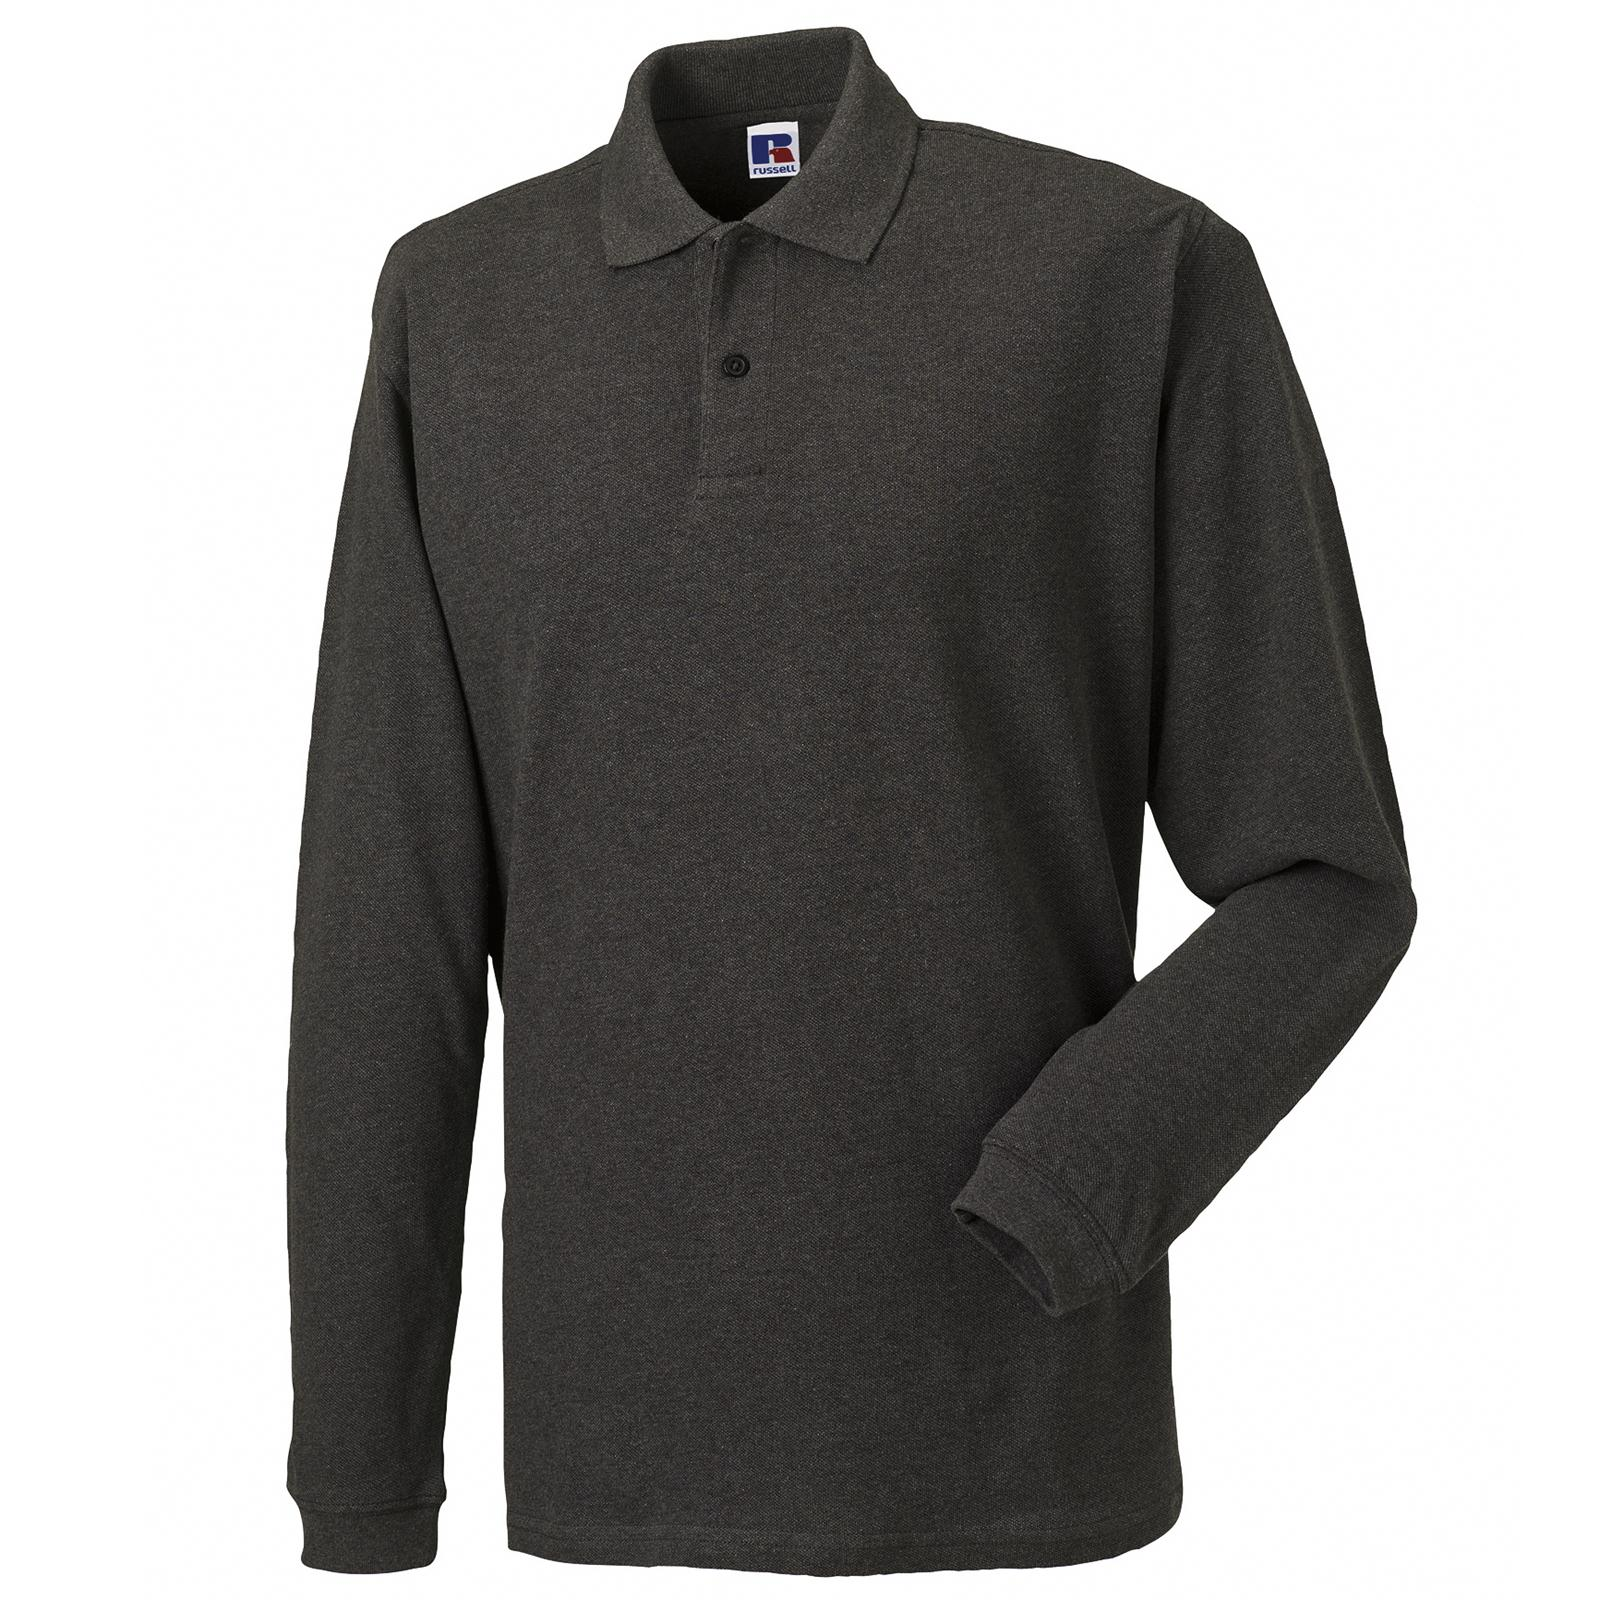 New russell long sleeve 100 cotton pique polo shirt in 5 for Long sleeve 100 cotton shirts